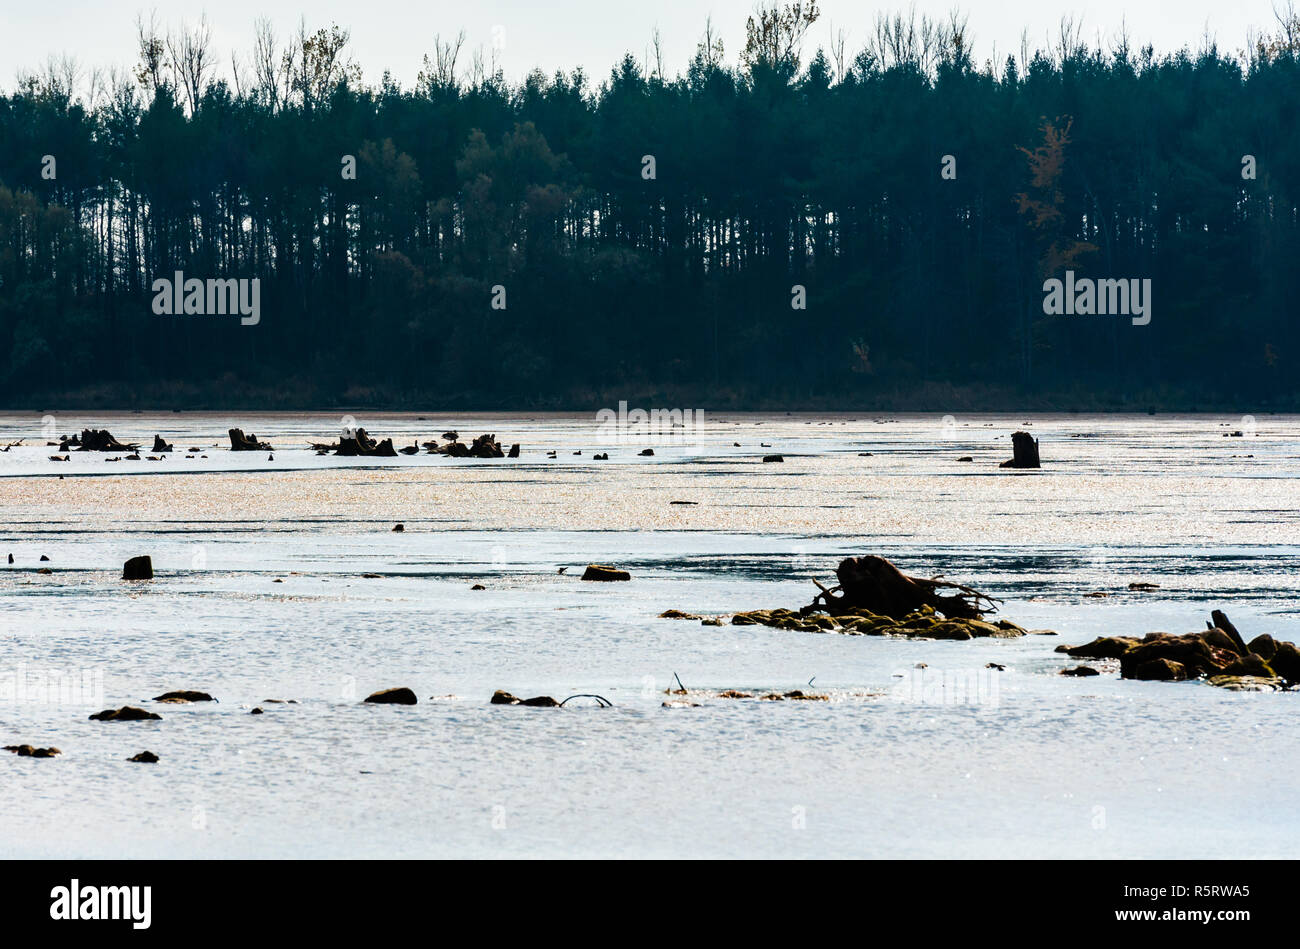 Tree stumps contrasted against muddy pond and dark forest. Stock Photo